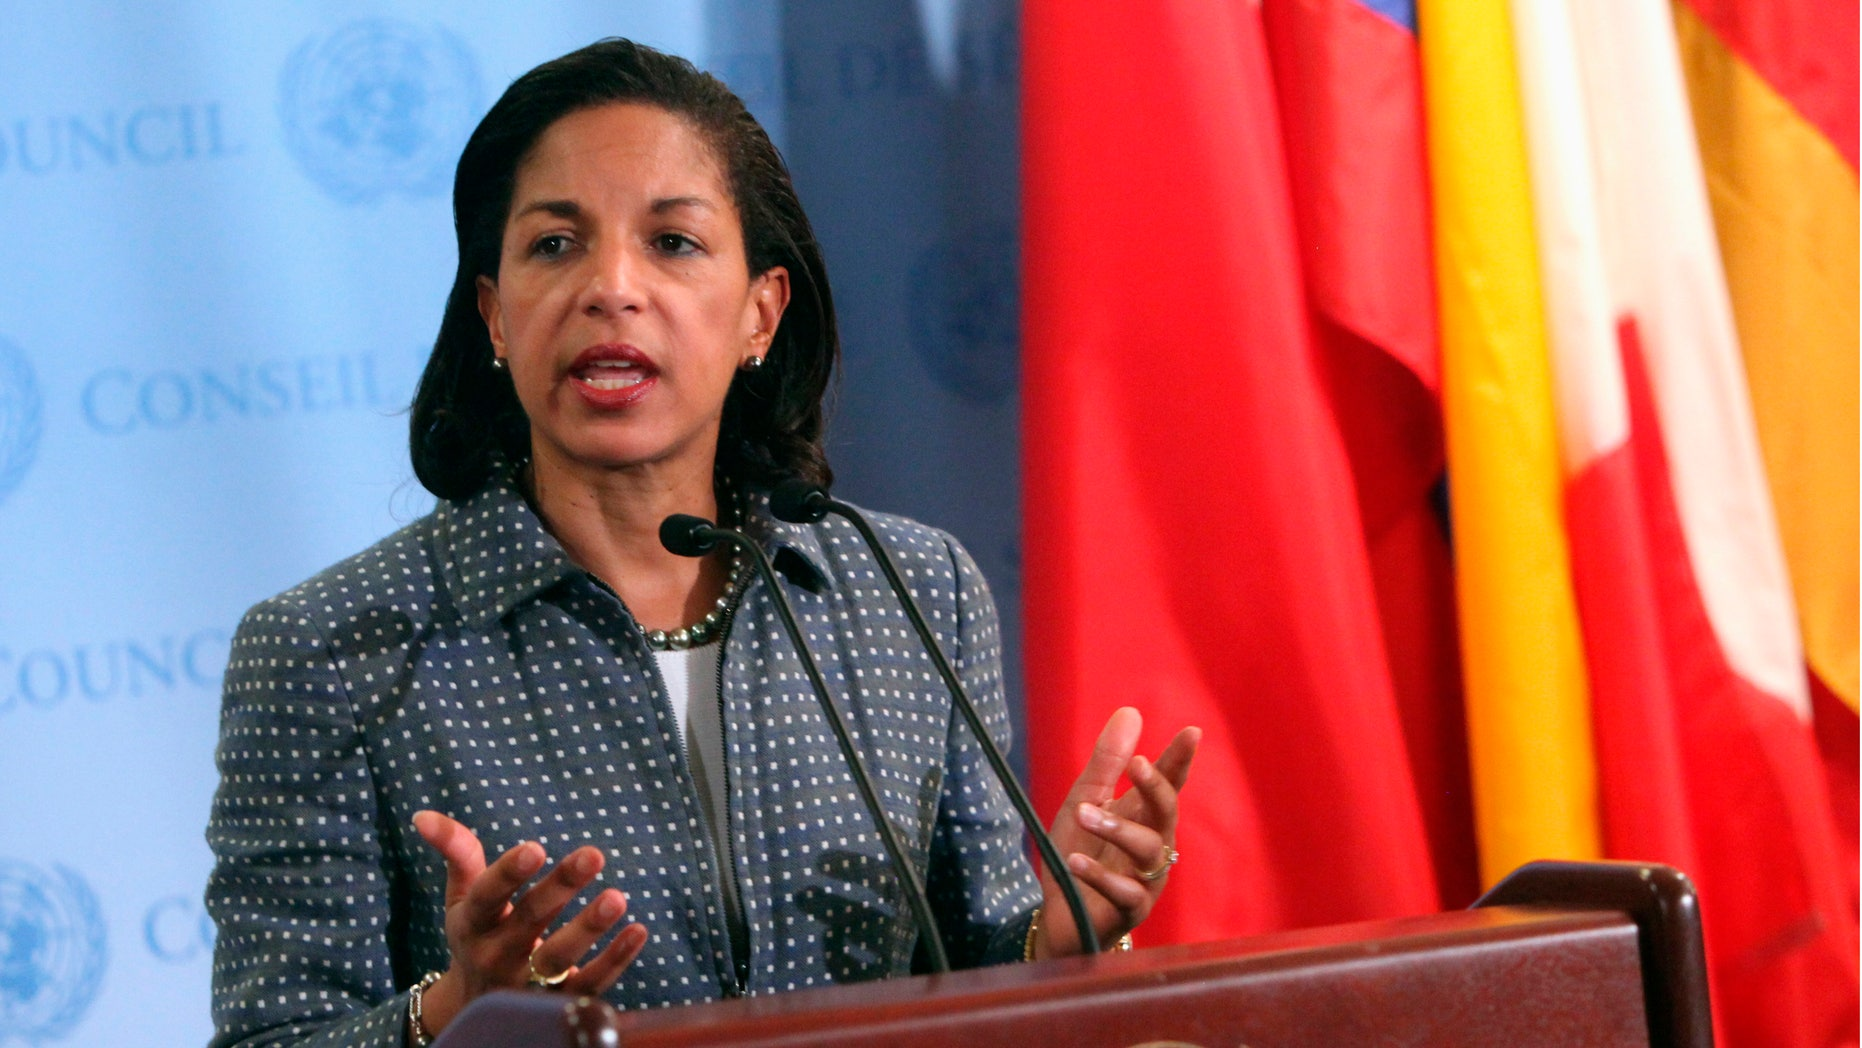 FILE: June 7, 2012: Susan Rice, U.S. ambassador to the United Nations, talks at U.N. headquarters in New York.